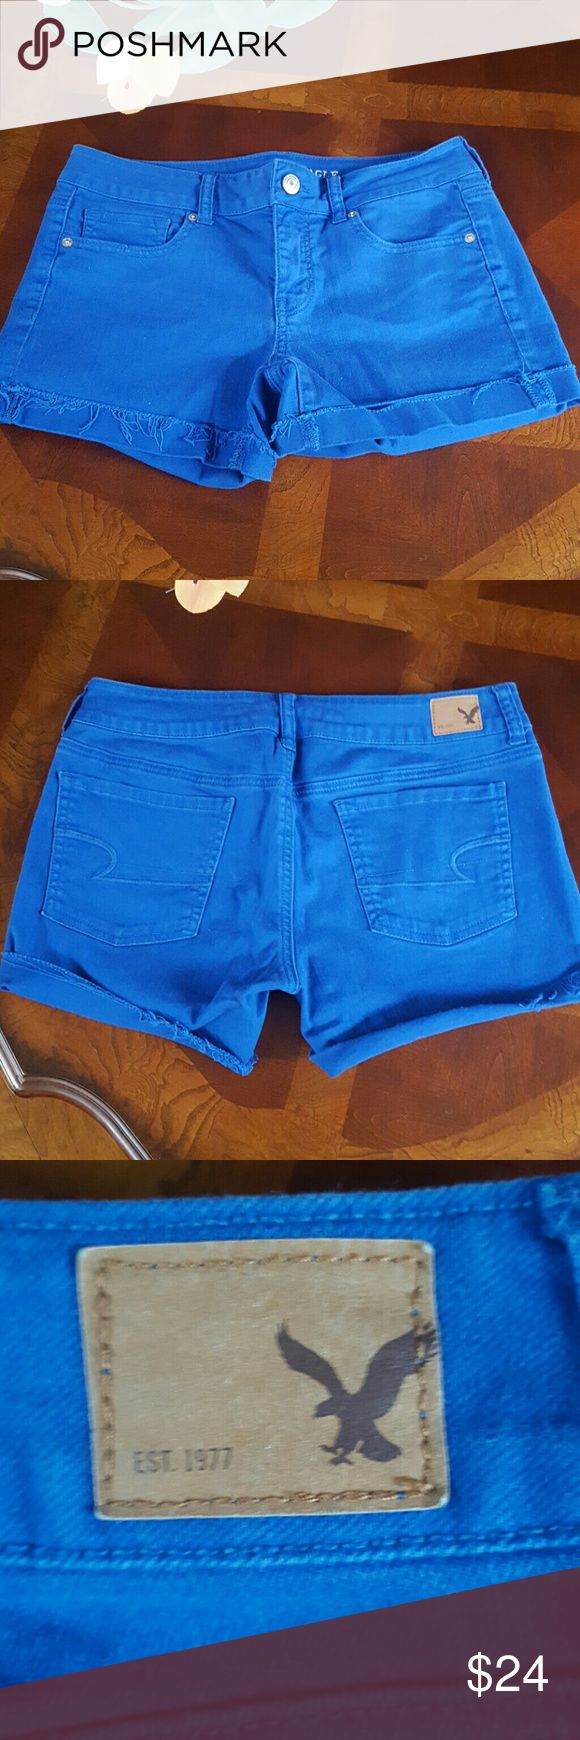 American Eagle cobalt blue shorts! This is a great pair of cutoff cuffed cobalt blue stretch denim shorts in a size 10! American Eagle Outfitters Shorts